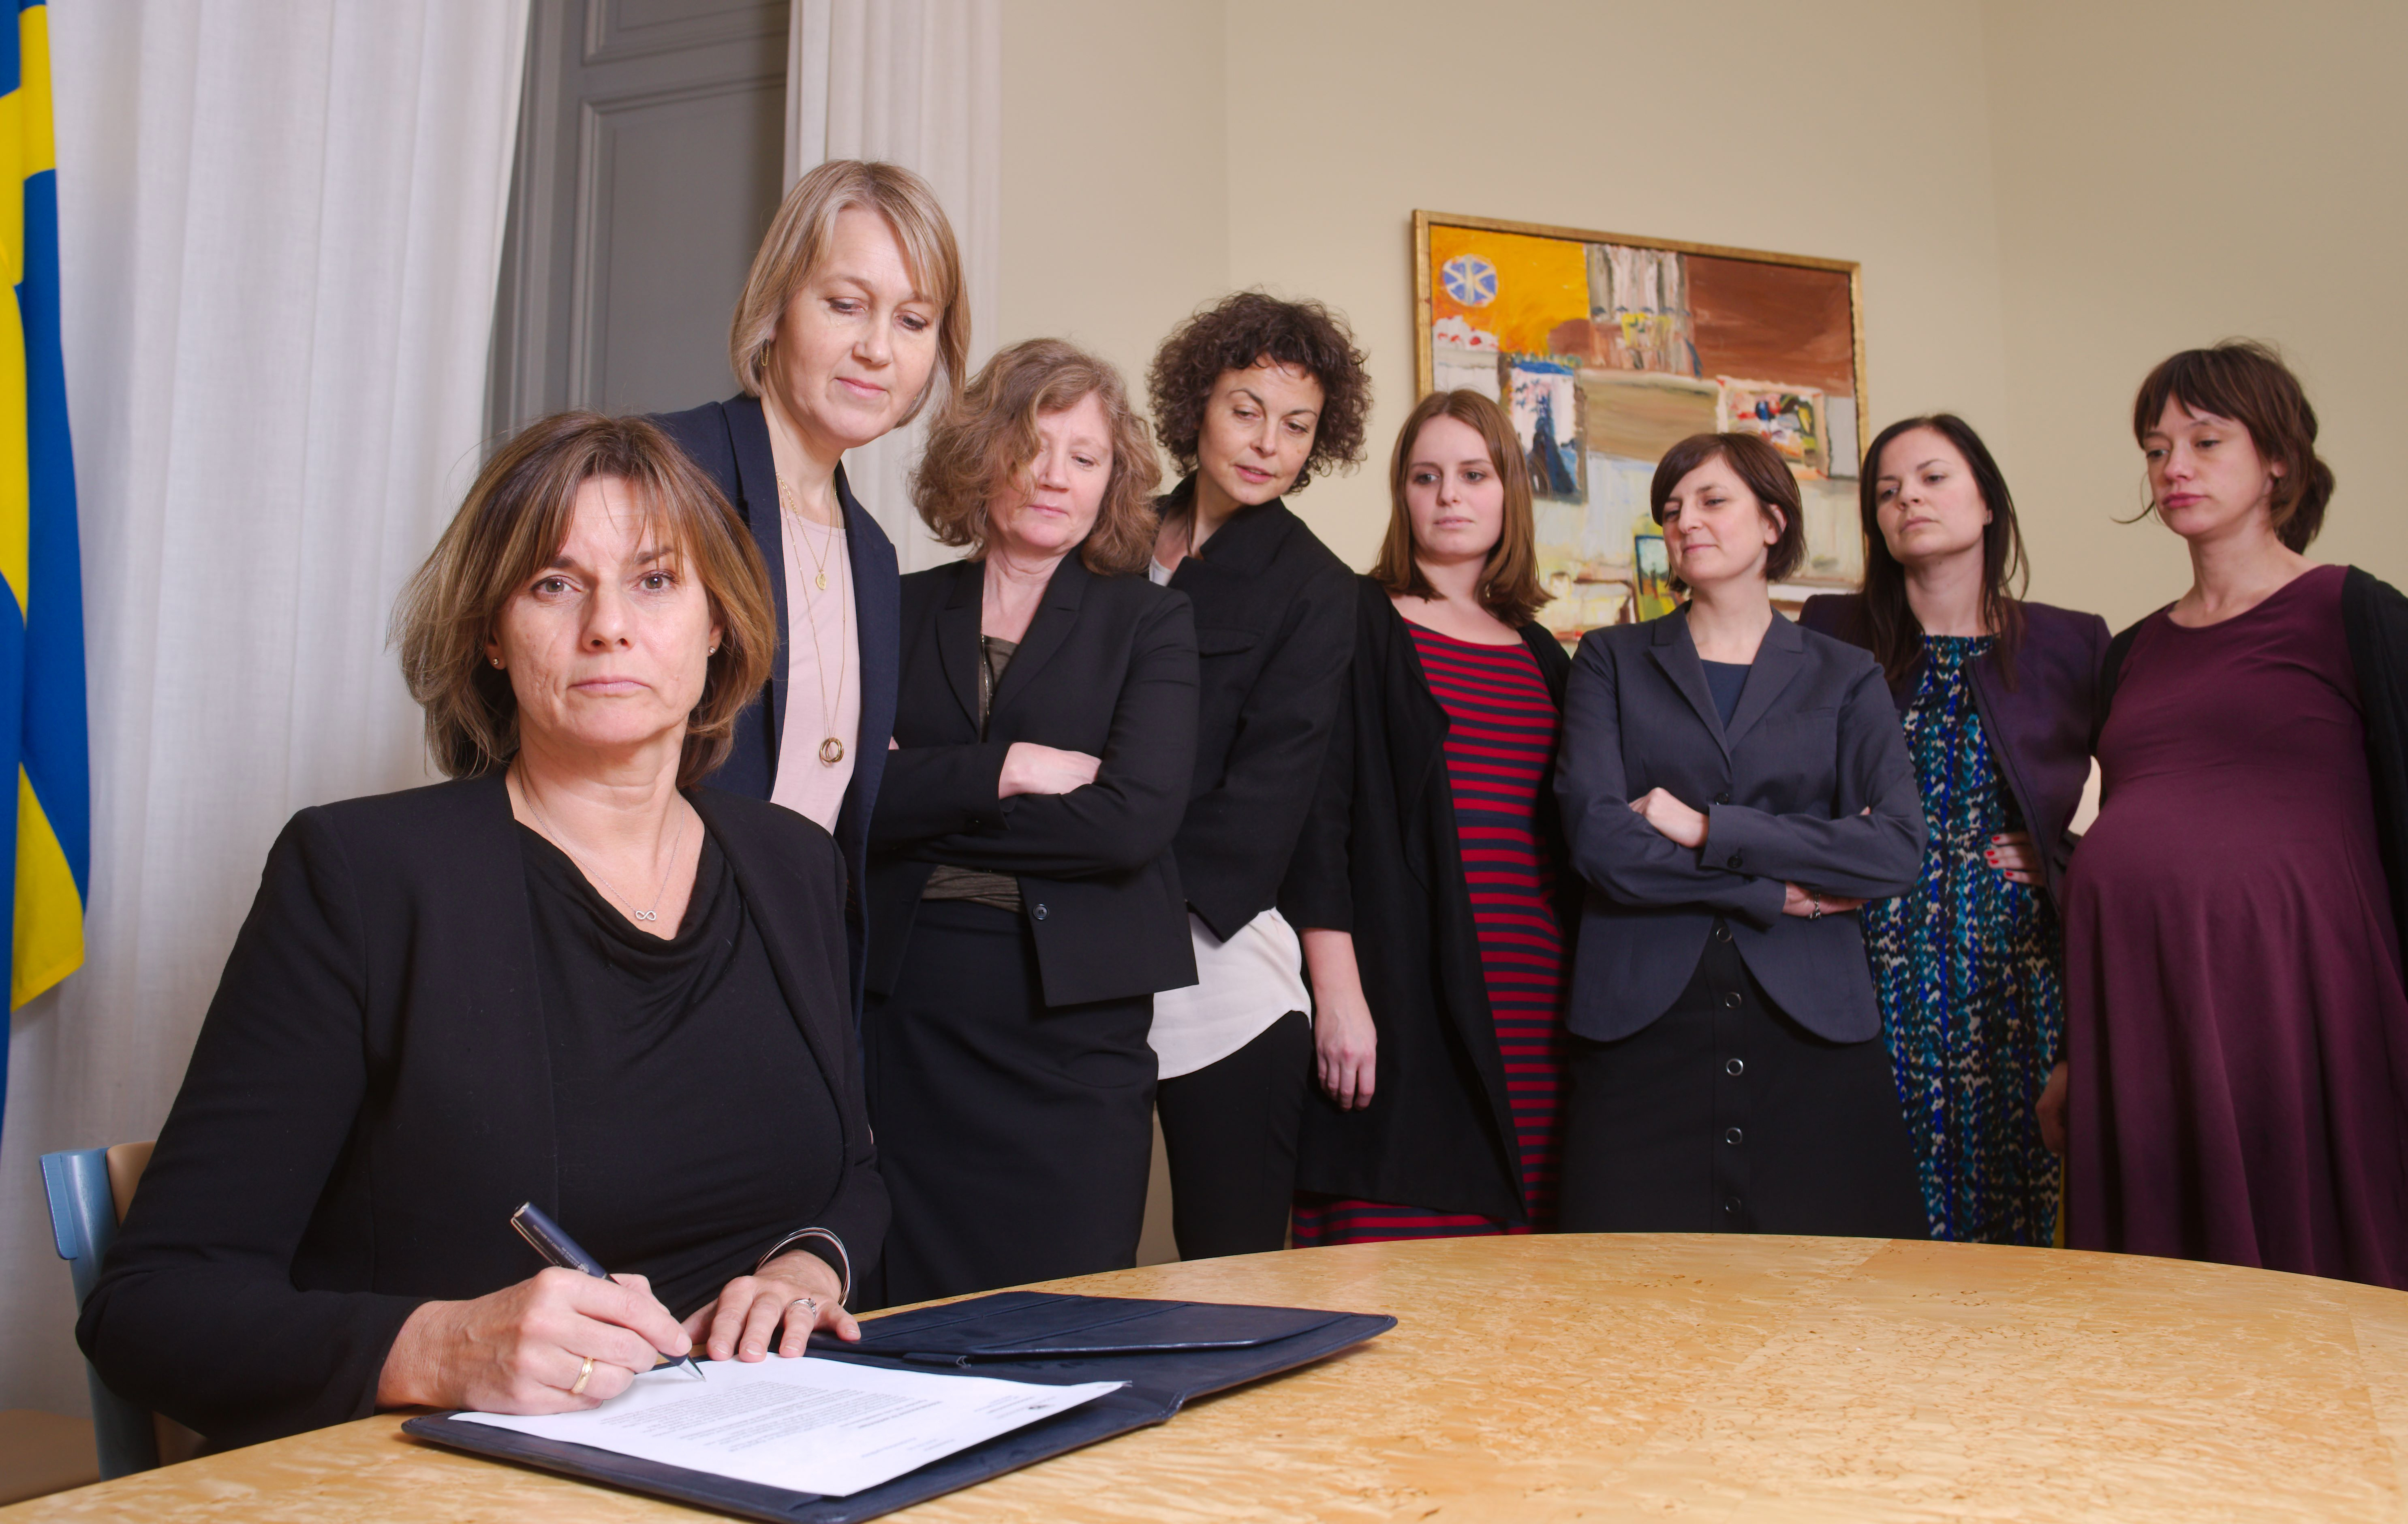 In  The Swedish Climate Law Is Signed By Isabella Lovin With Other Female Cabinet Members